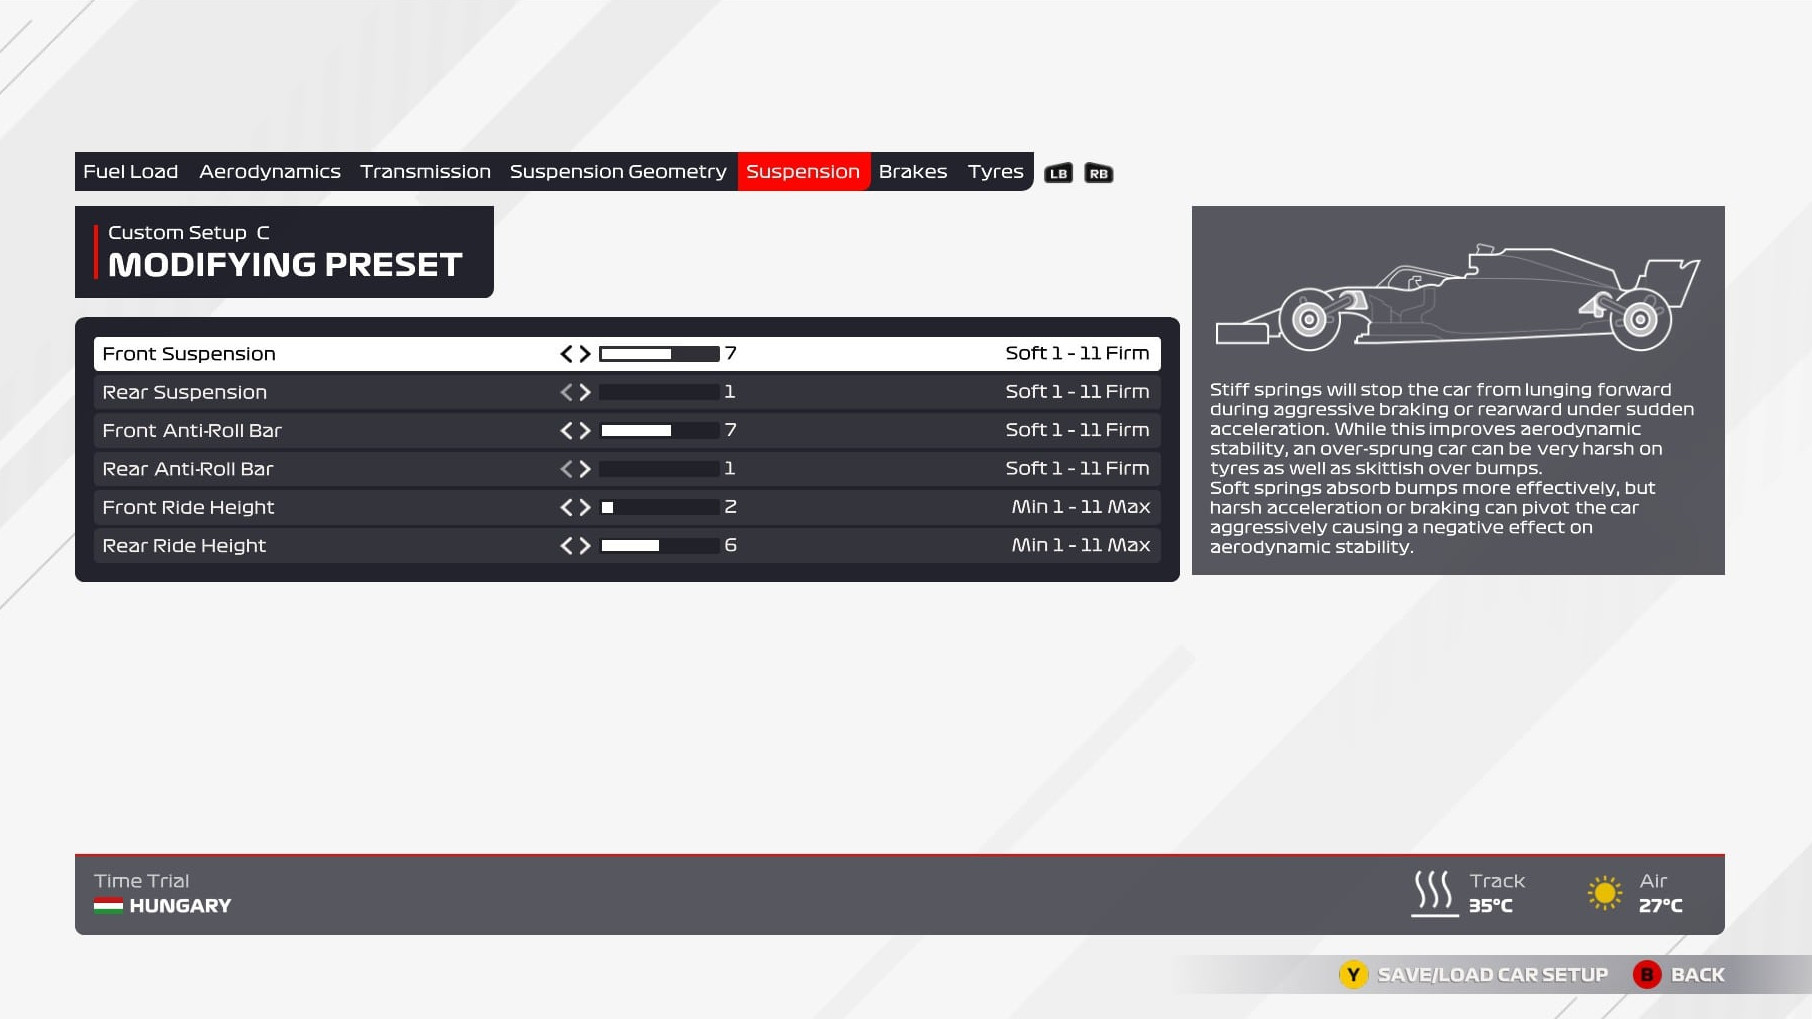 An image of the suspension page of the F1 2021 setup menu.